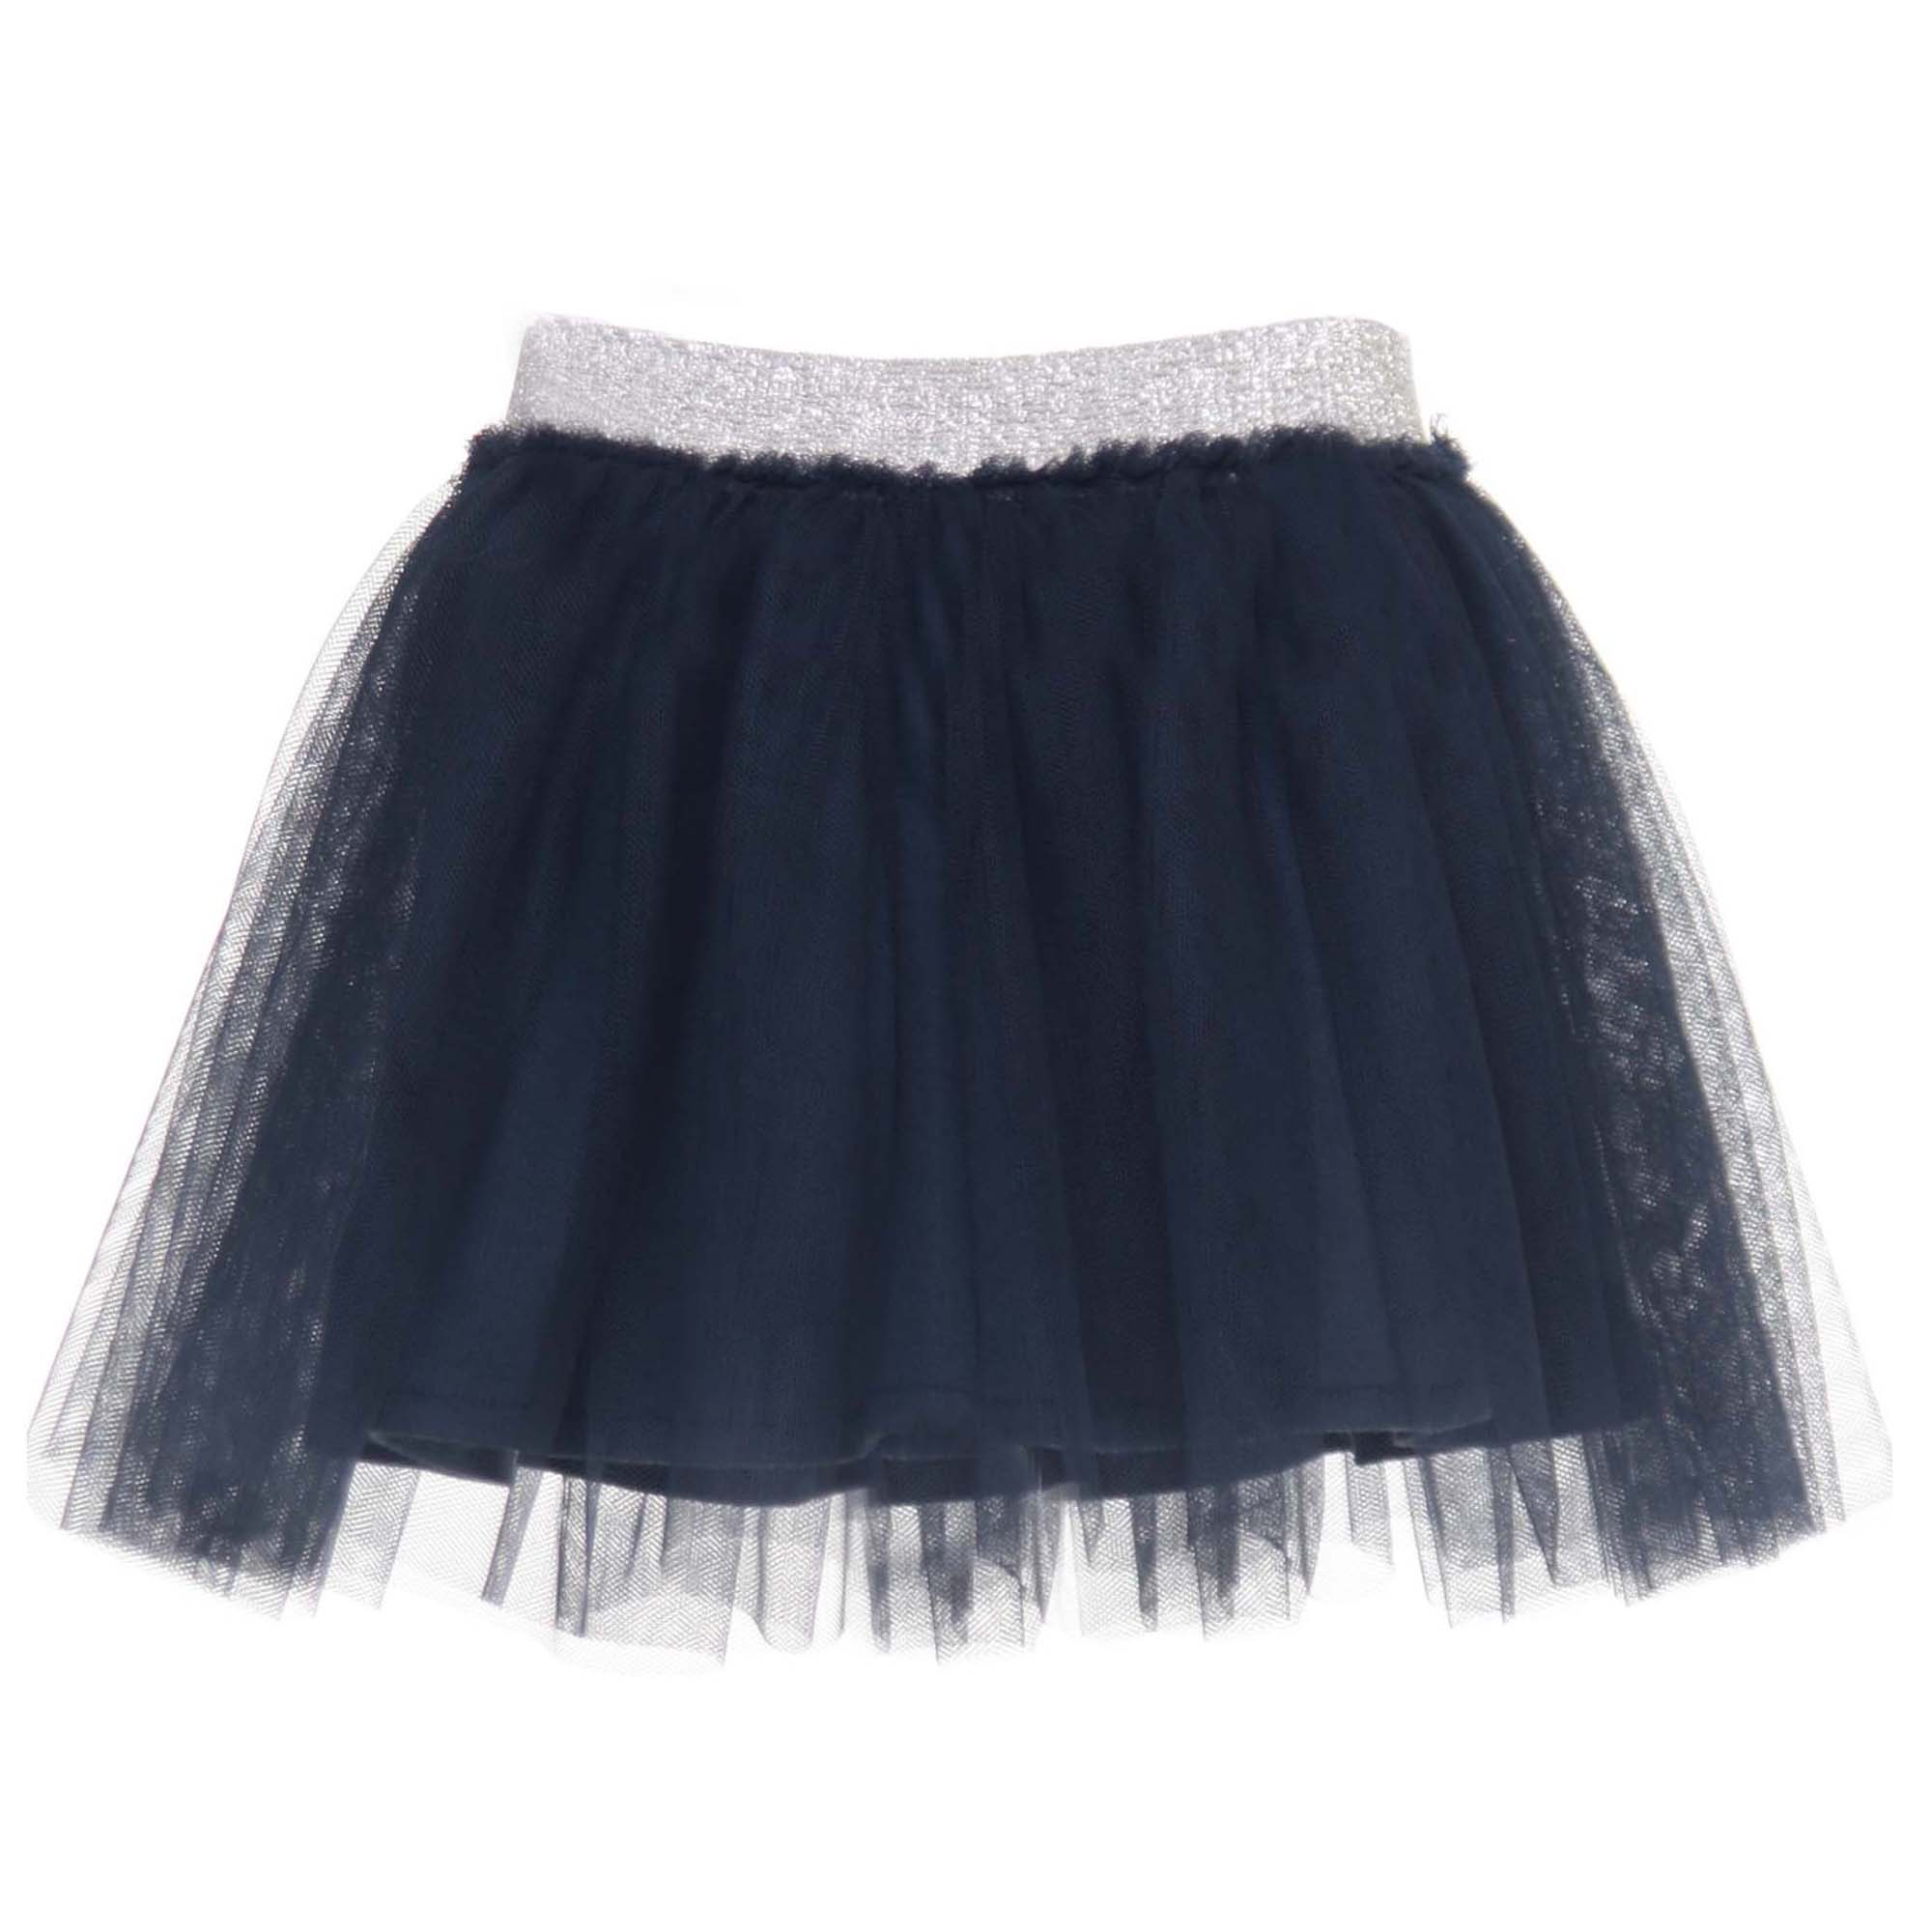 Elsy Gonna Corta Baby In Tulle Blu Notte E Argento